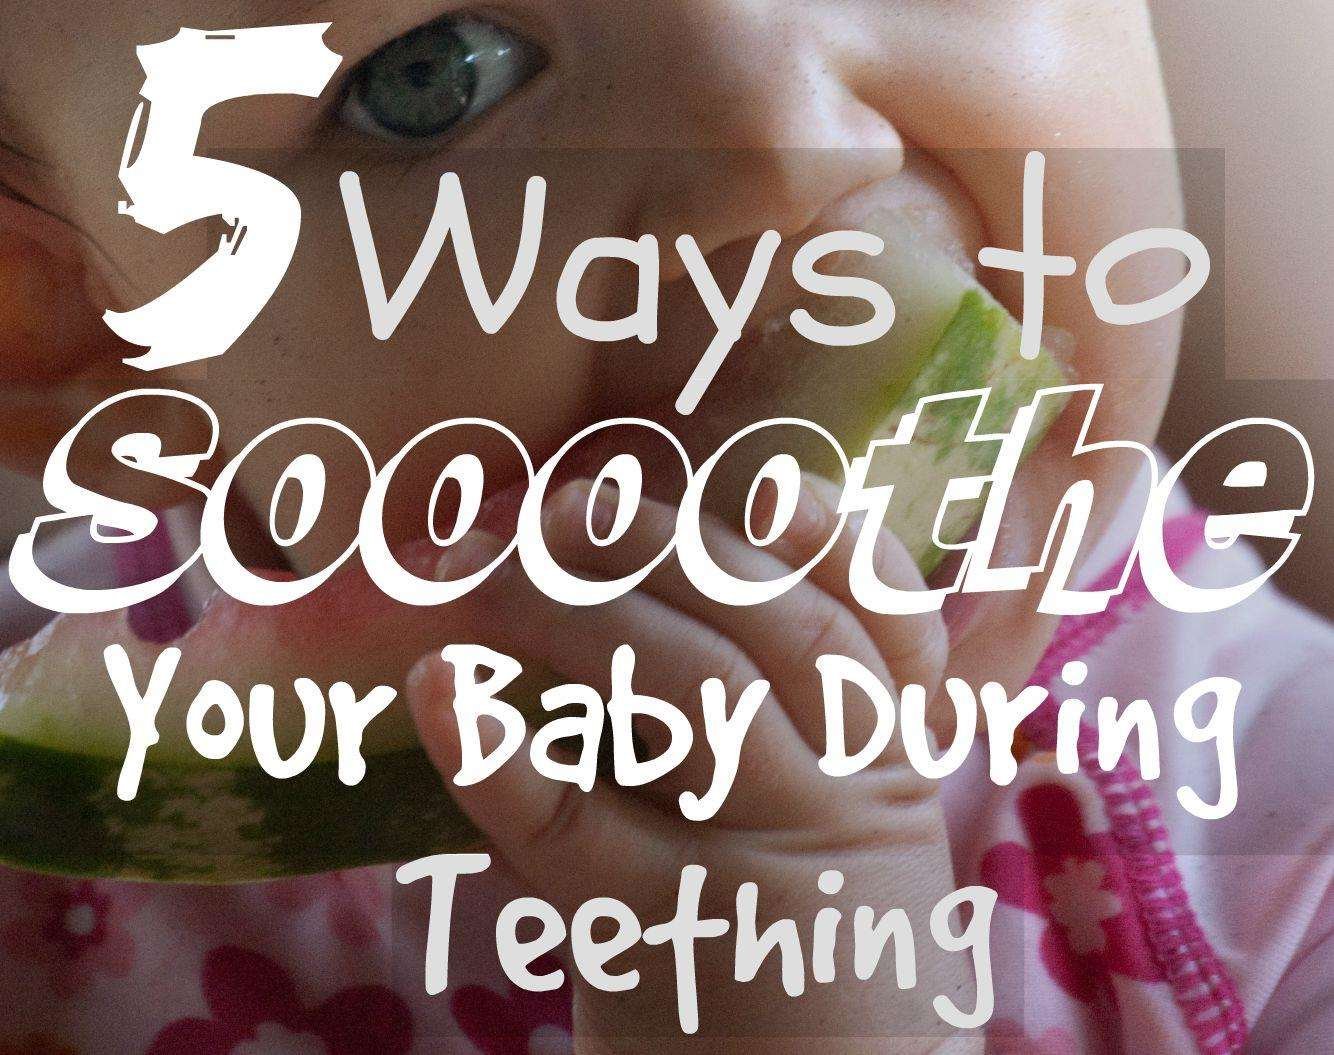 Soothe Your Baby During Teething, 5 Ways to Soothe your baby during teething LS%, 0-1%